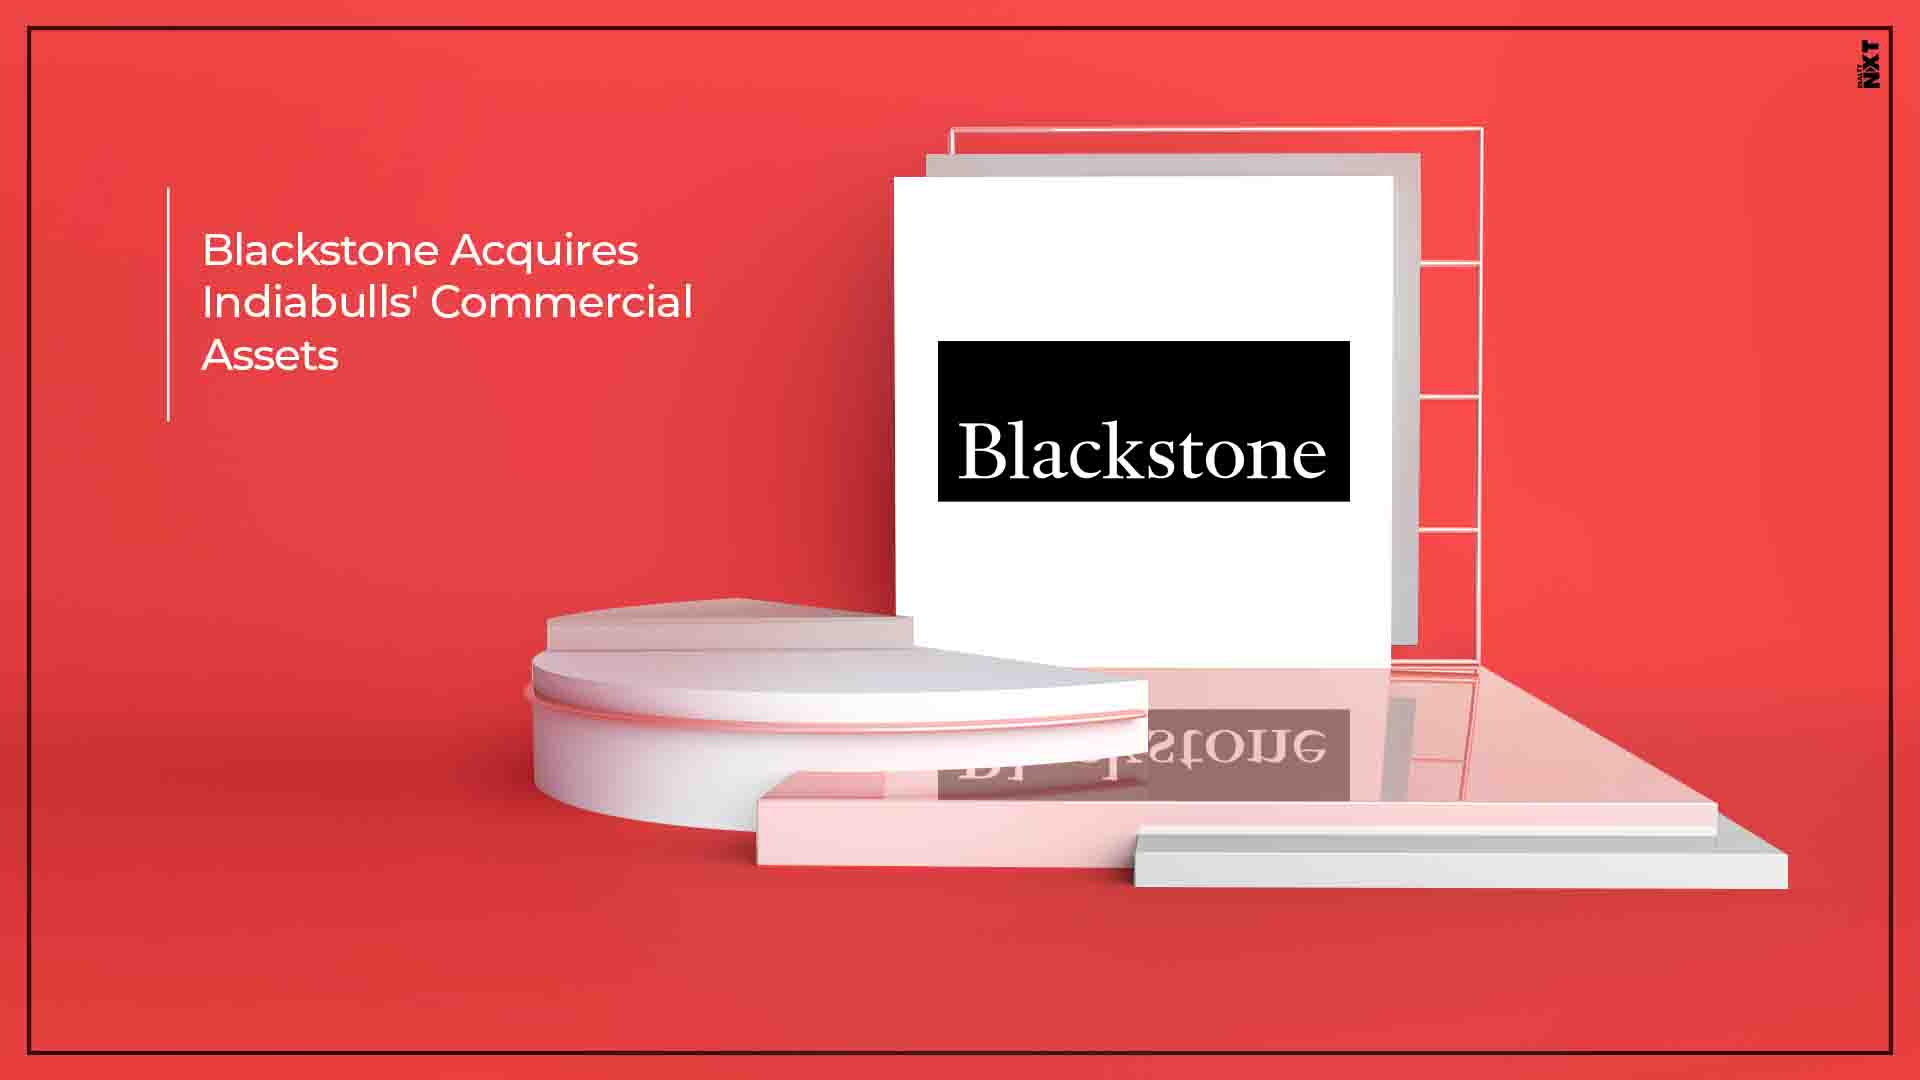 Blackstone Buys Commercial Property For Rs 4,420 Crore